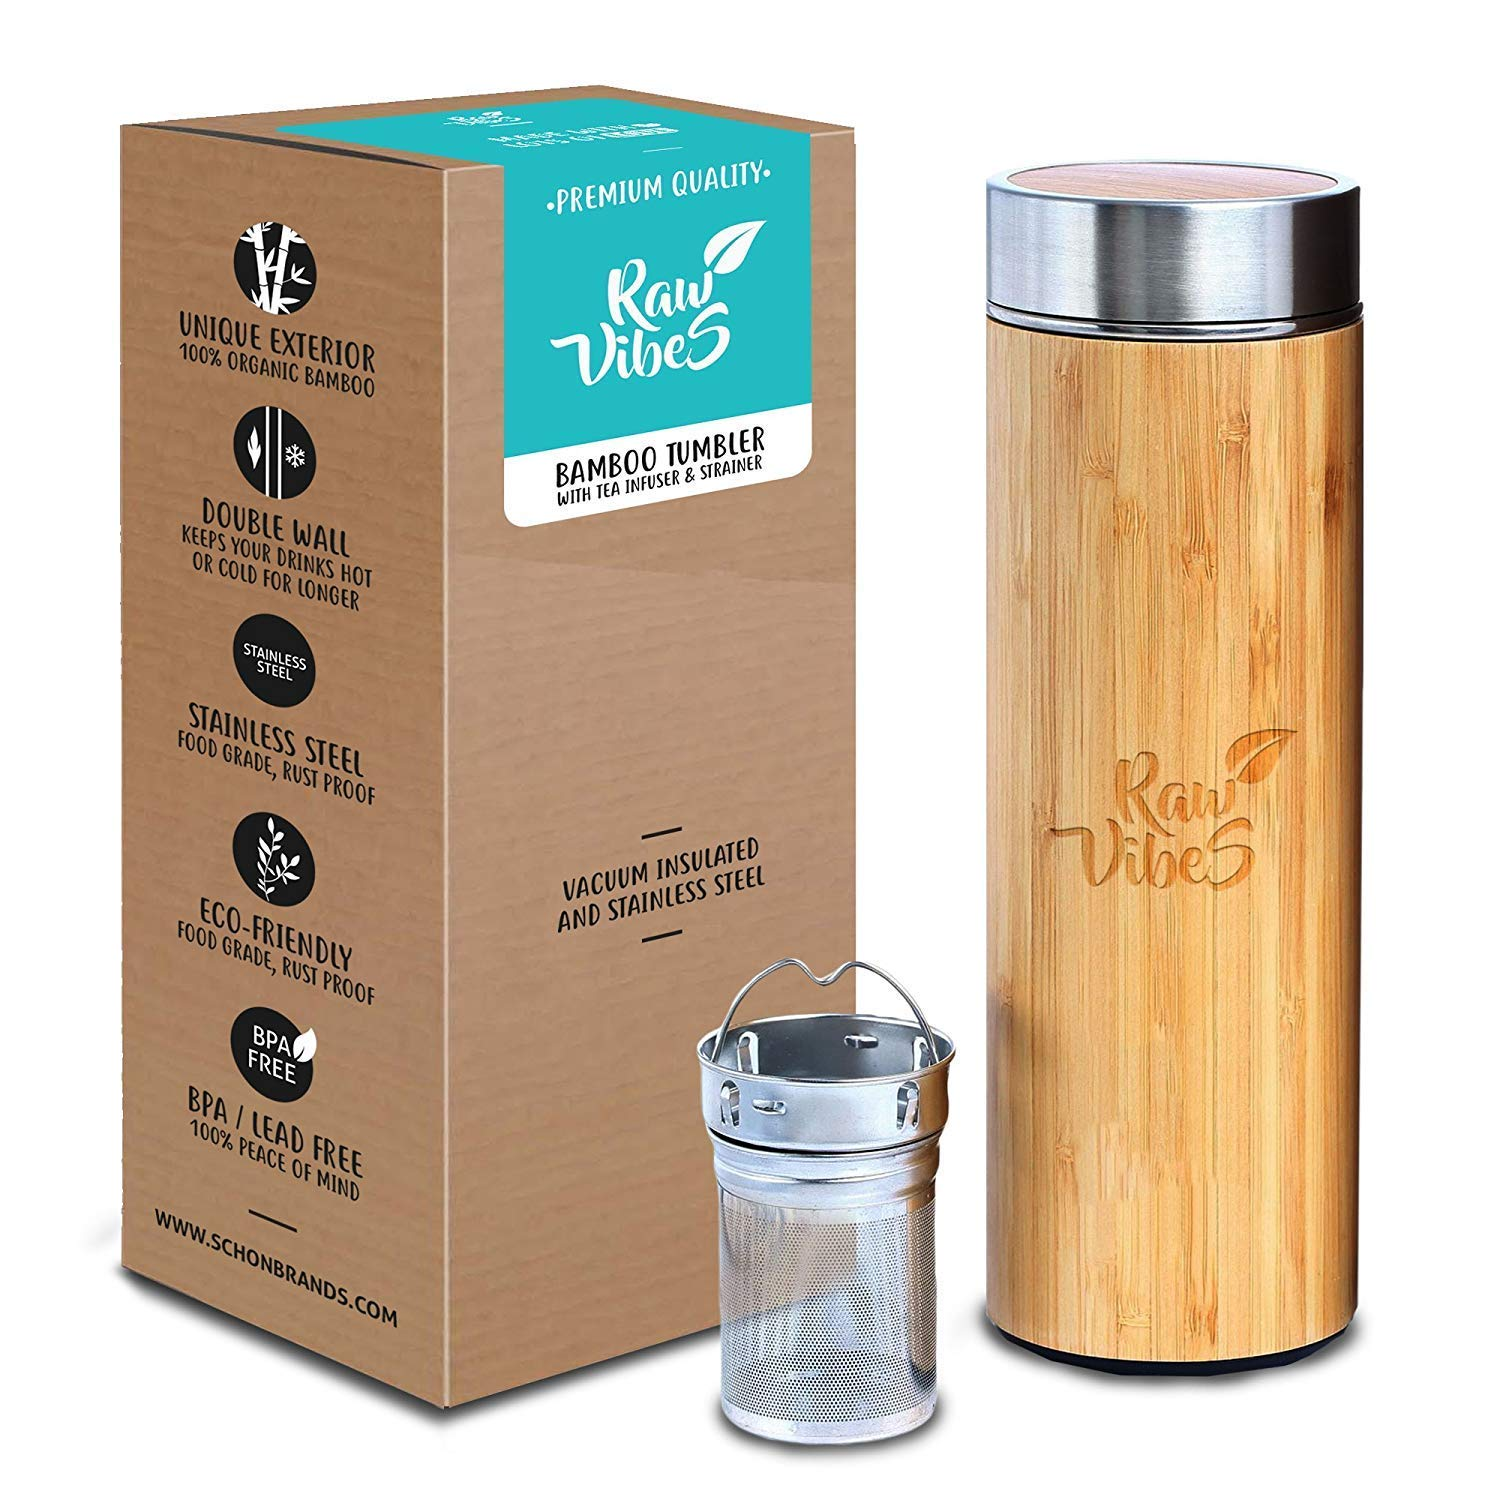 Original Bamboo Tumbler with Tea Infuser & Strainer by Raw Vibes | 17oz Stainless Steel Water Bottle | Insulated Coffee Travel Mug | Gift For Tea Lovers | Mesh Filter for Brewing Loose Leaf | BPA-Free